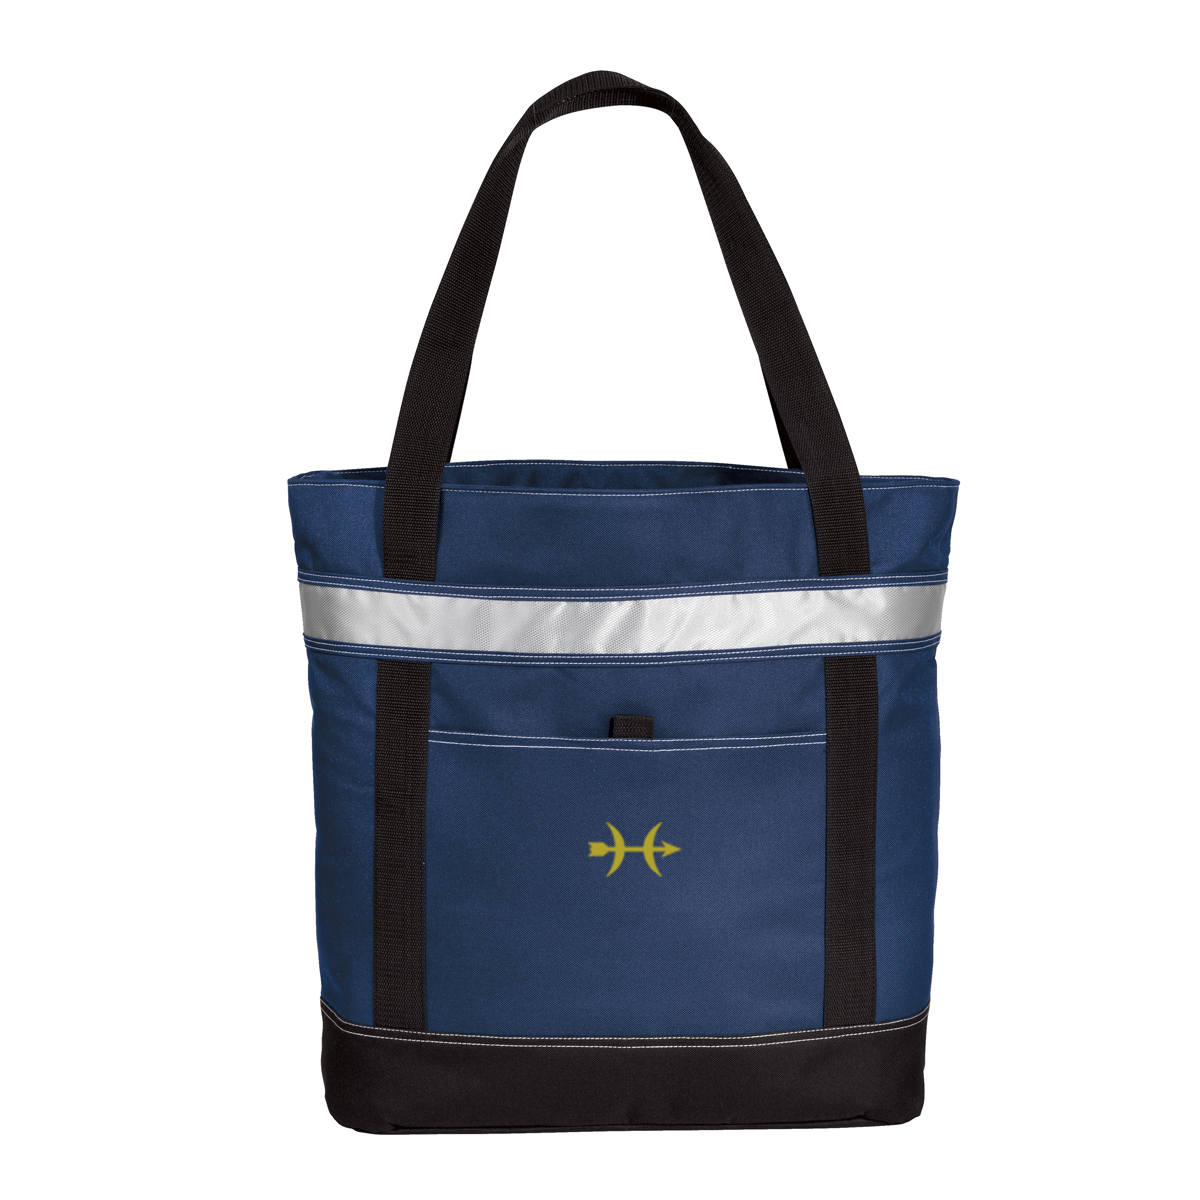 Hunt Yachts- Cooler Tote Bag